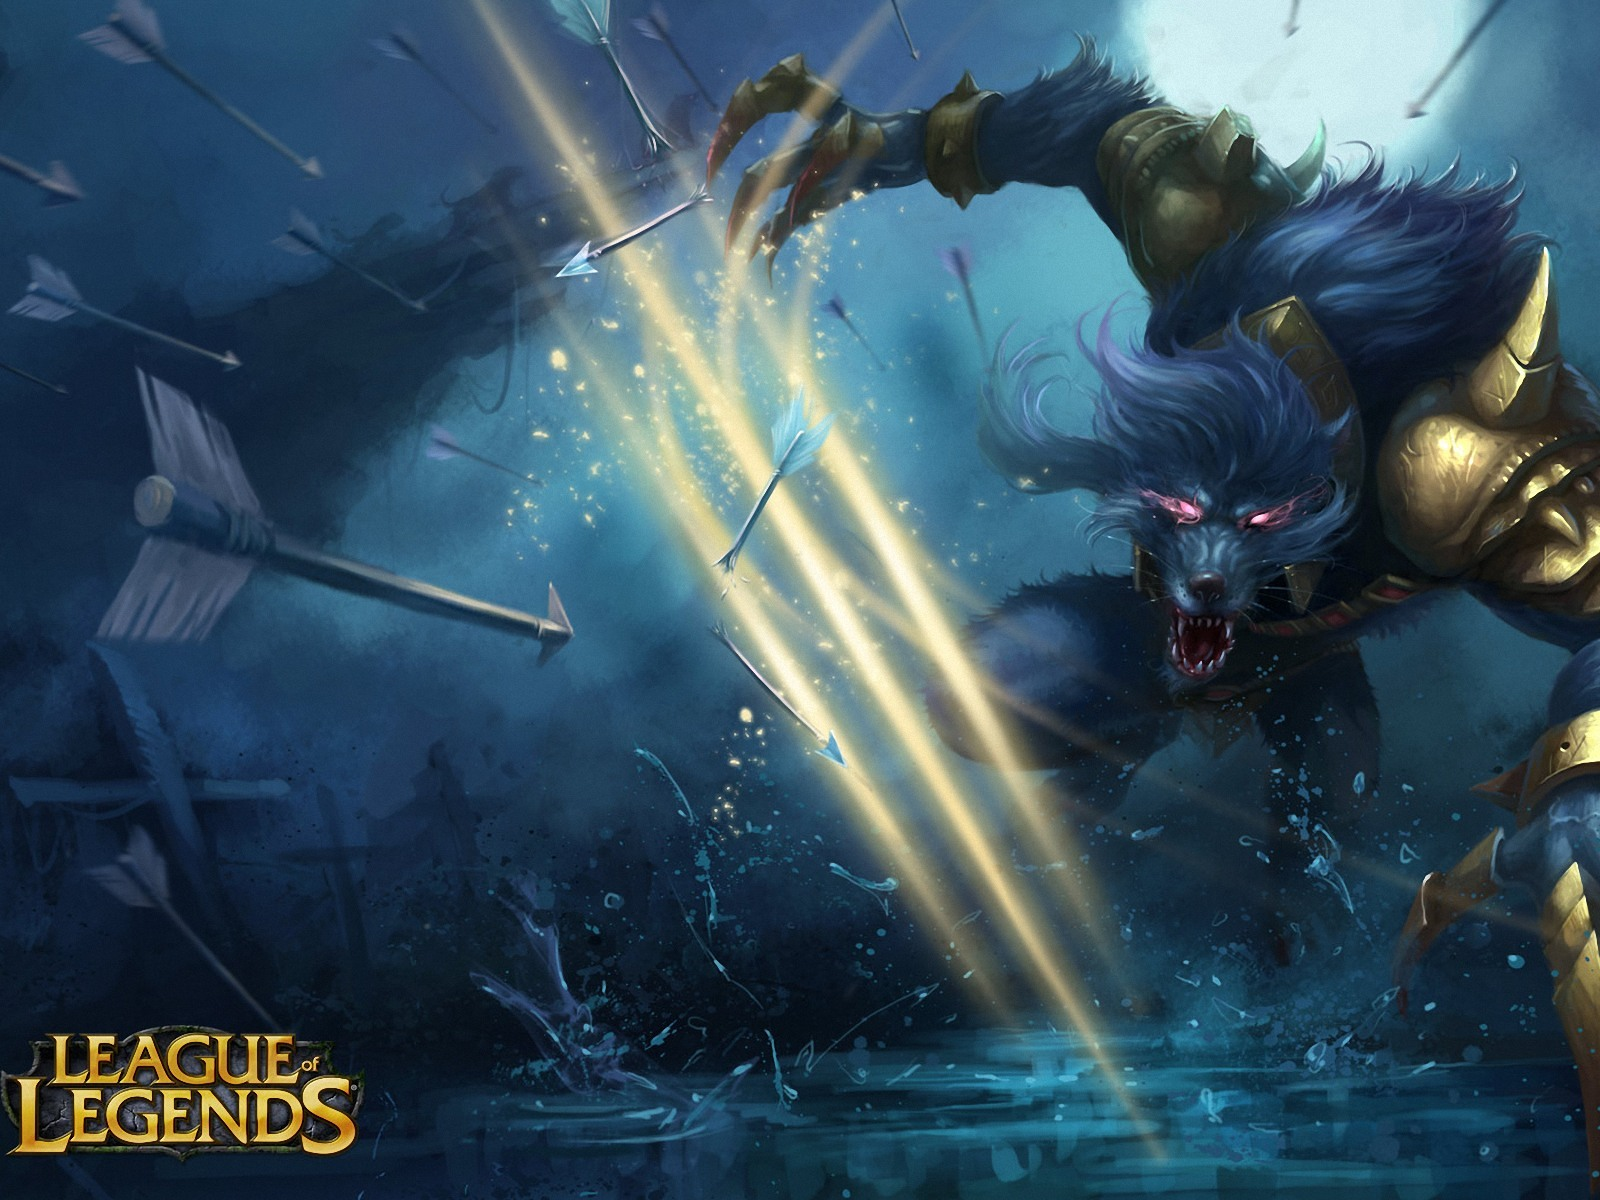 League of Legends wallpaper 39